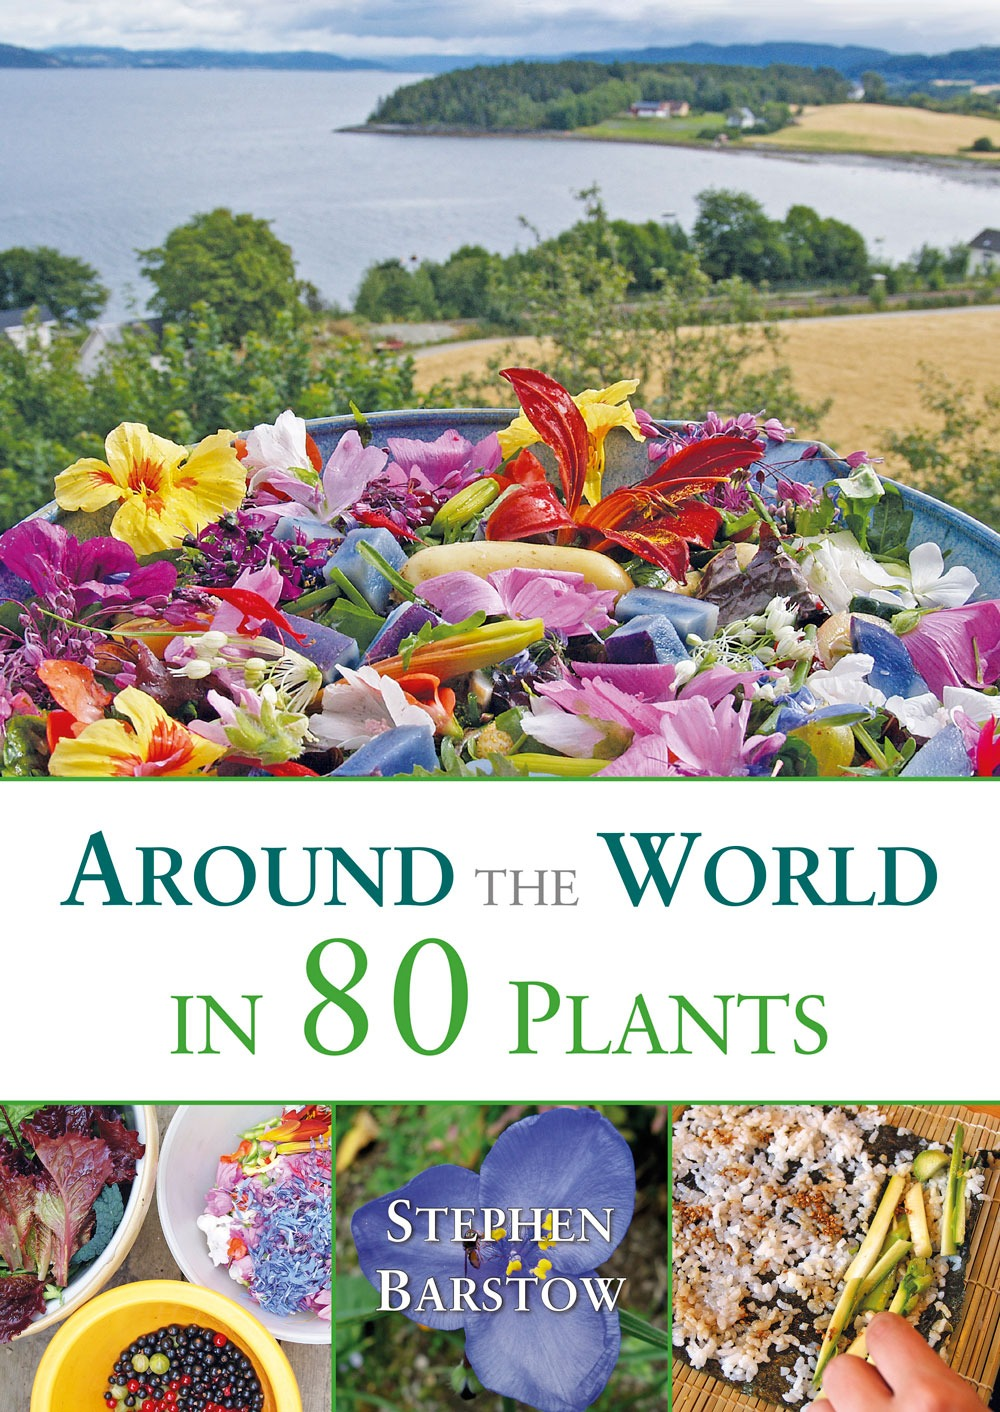 Around The World in 80 Plants: An Edible Perennial Vegetable Adventure For Temperate Climates by Stephen Barstow